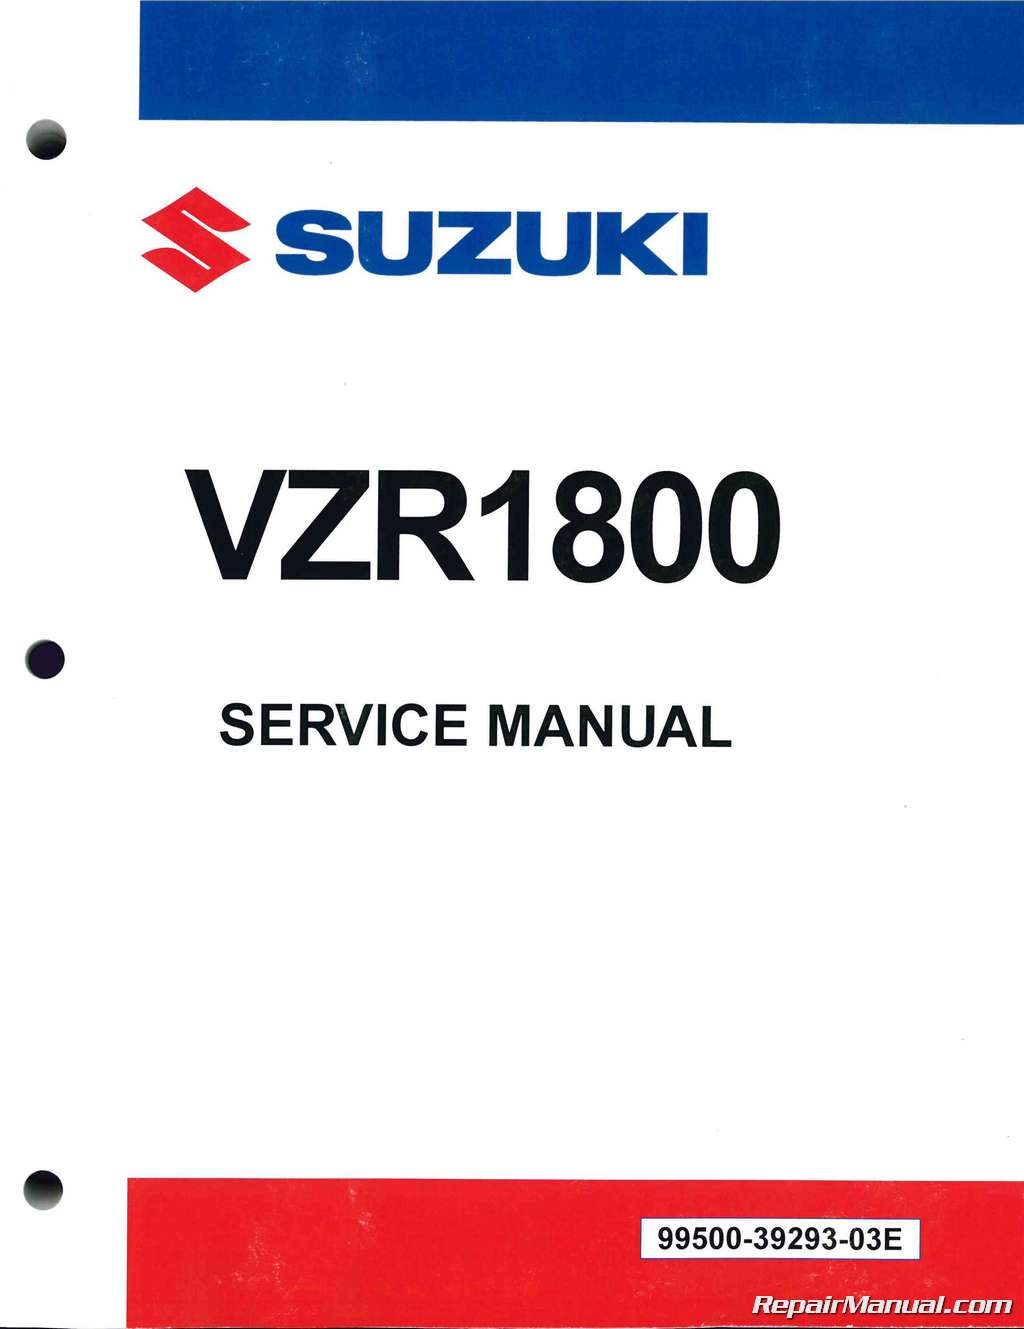 2007 suzuki m50 wiring diagram learn wiring diagram effectively u2022 rh thegadgetgurus co Suzuki Intruder 700 Motorcycle Wiring Diagrams Suzuki SX4 Cruise Control Wiring Diagram